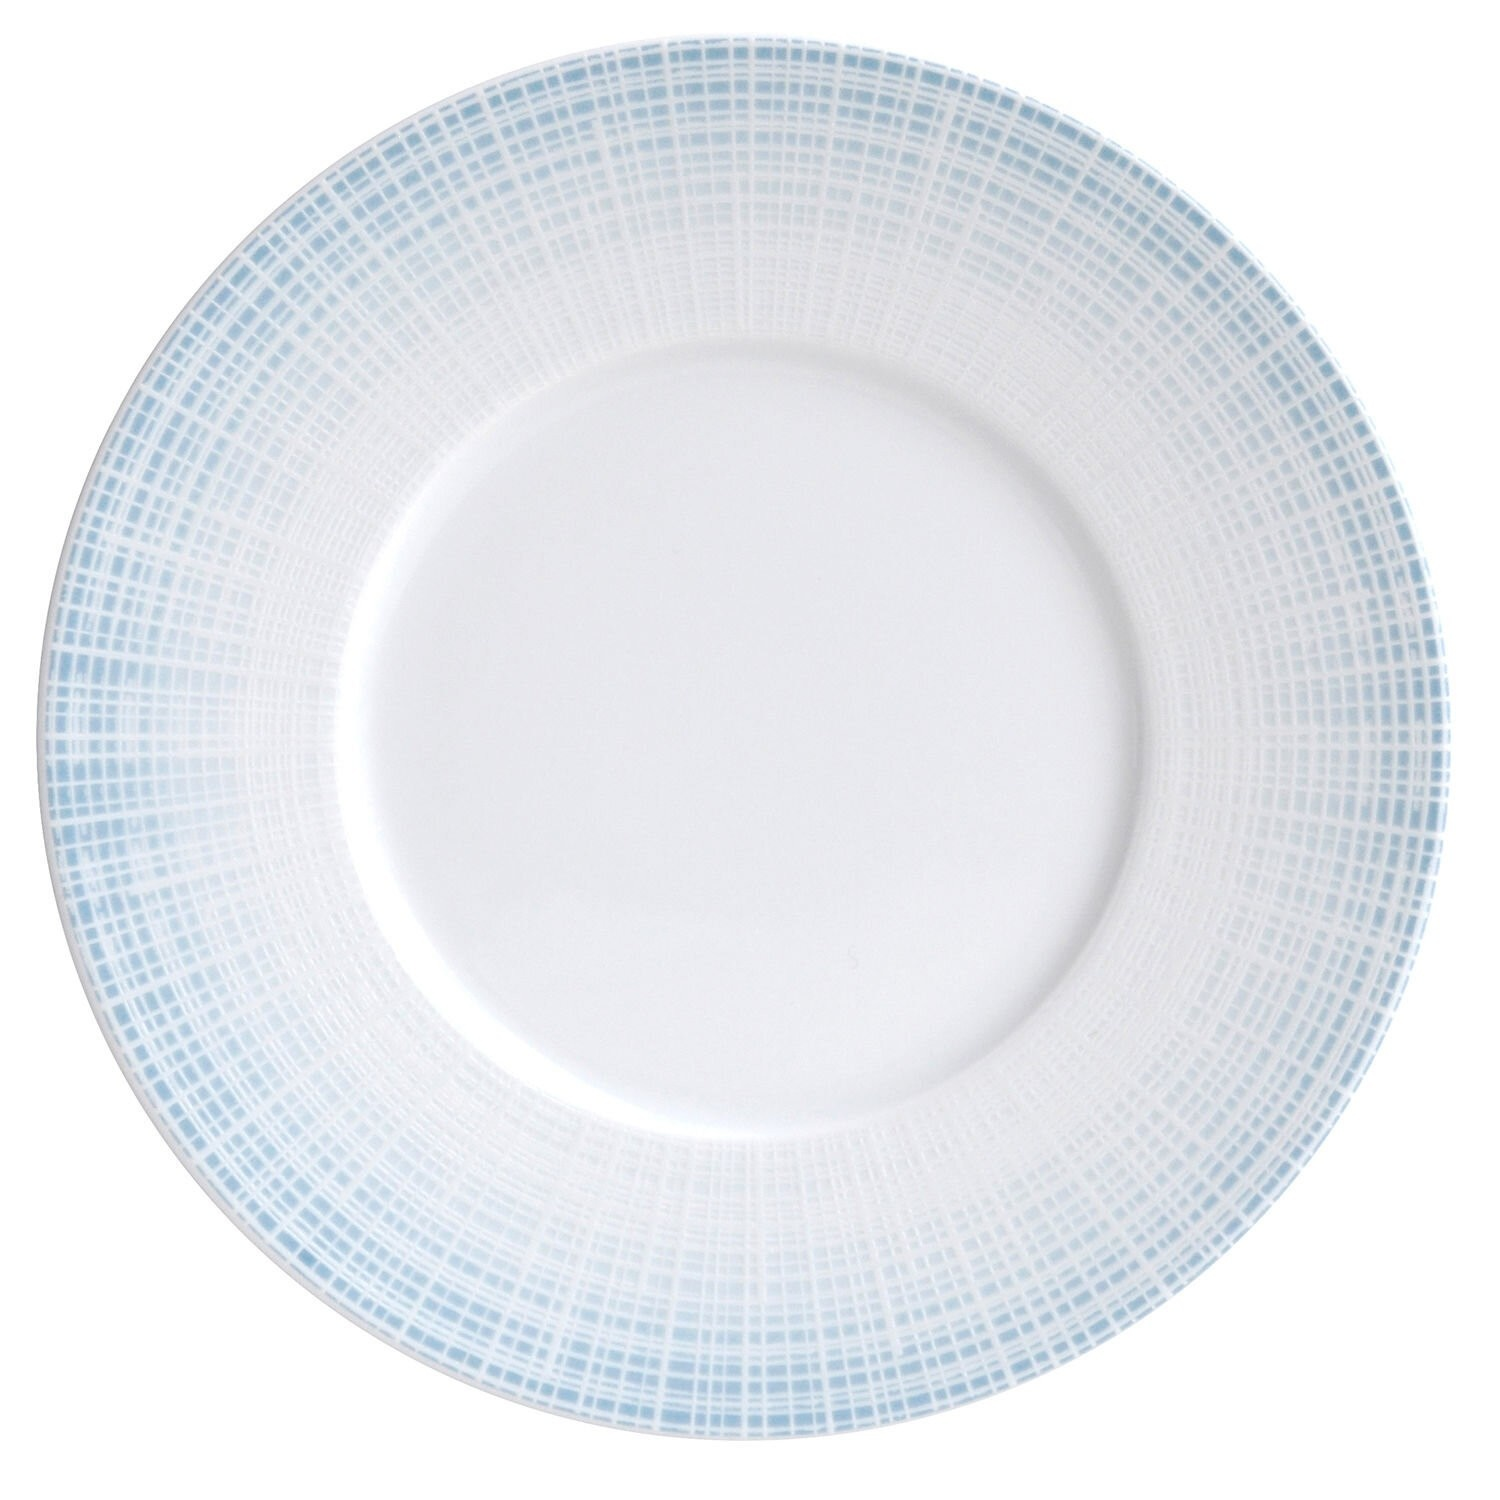 SAPHIR BLEU 5 PIECE PLACE SETTING